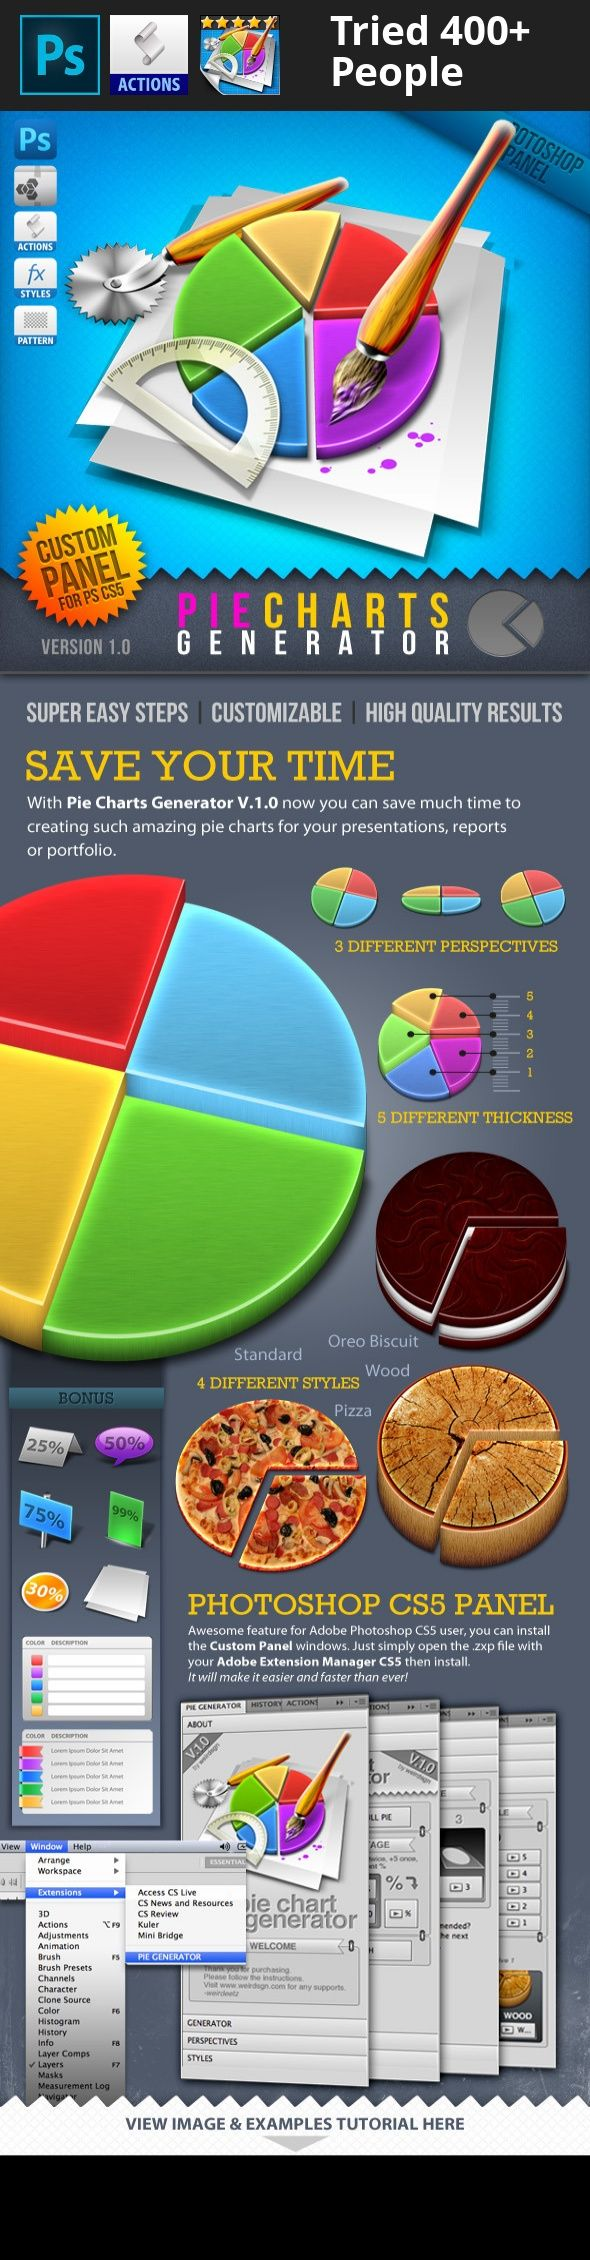 actions, biscuit, generator, graph, info, infographic, panel, pattern, percentage, photoshop, pie, pie charts, pizza, slice, styles, wood SAVE YOUR TIME With 3D Pie Charts Generator now you can make realistic – precision pie charts with only a few clicks on Photoshop. Thousands of Photoshop activities packaged in a simple Actions set. Super easy use and very efficient. And if you're an Adobe Photoshop CS5 users, just install the custom panel (Adobe Extension Manager CS5 required...